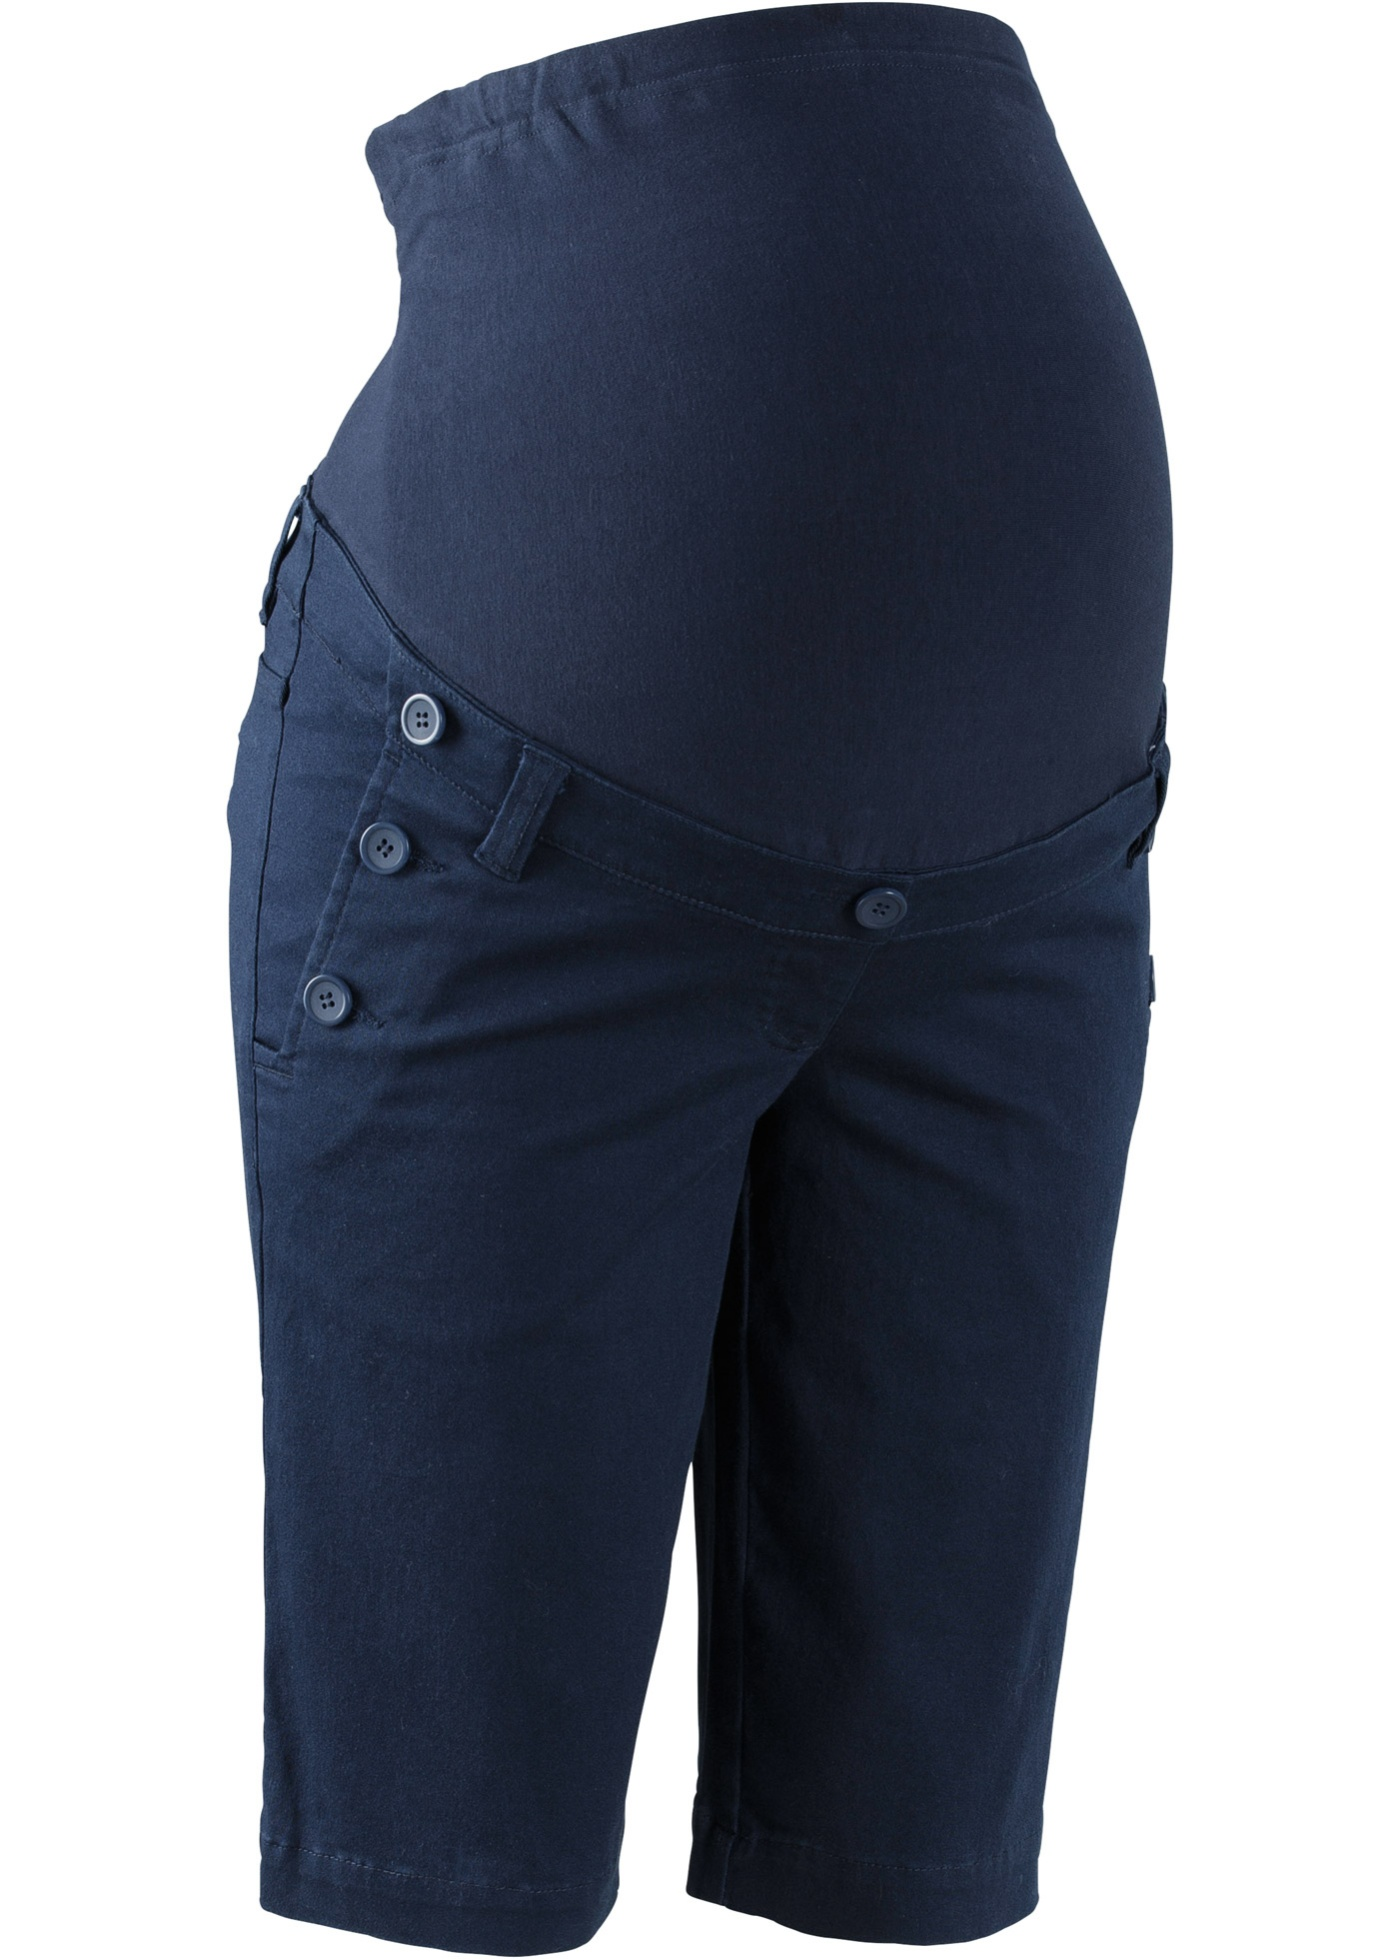 Pantaloncino prémaman con bottoni (Blu) - bpc bonprix collection